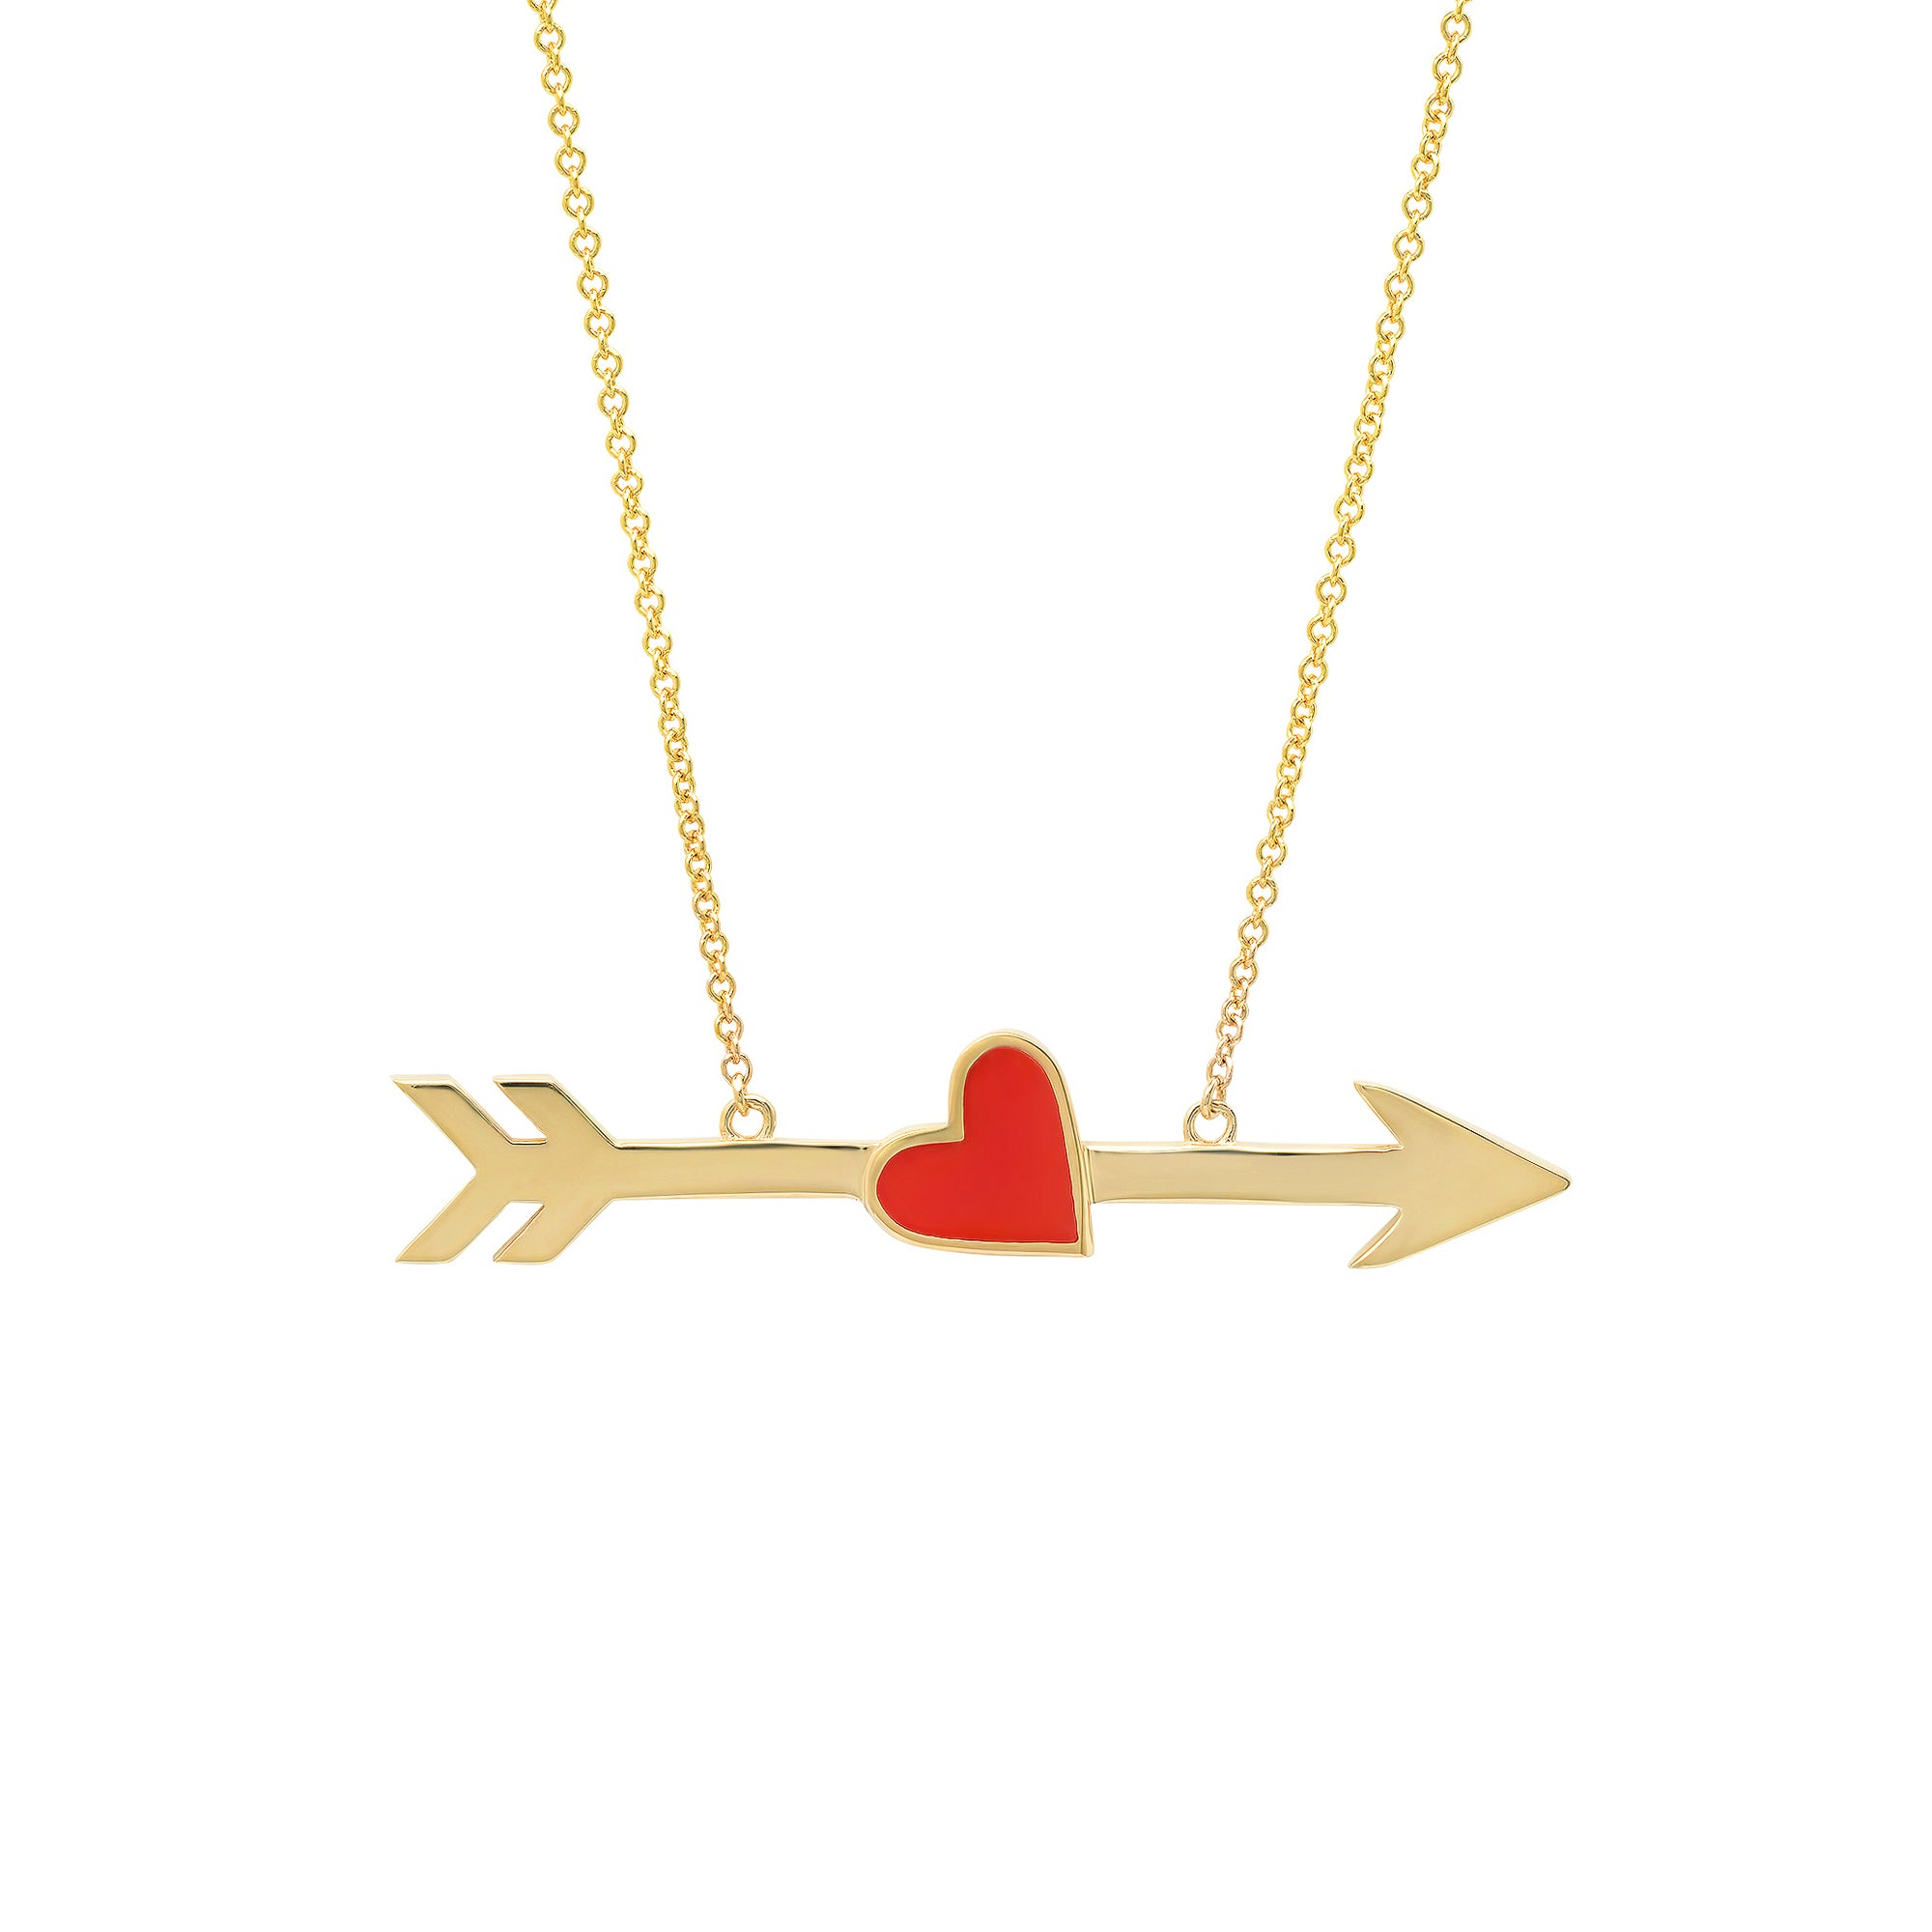 Enamel Heart and Arrow Necklace by Established Jewelry for Broken English Jewelry